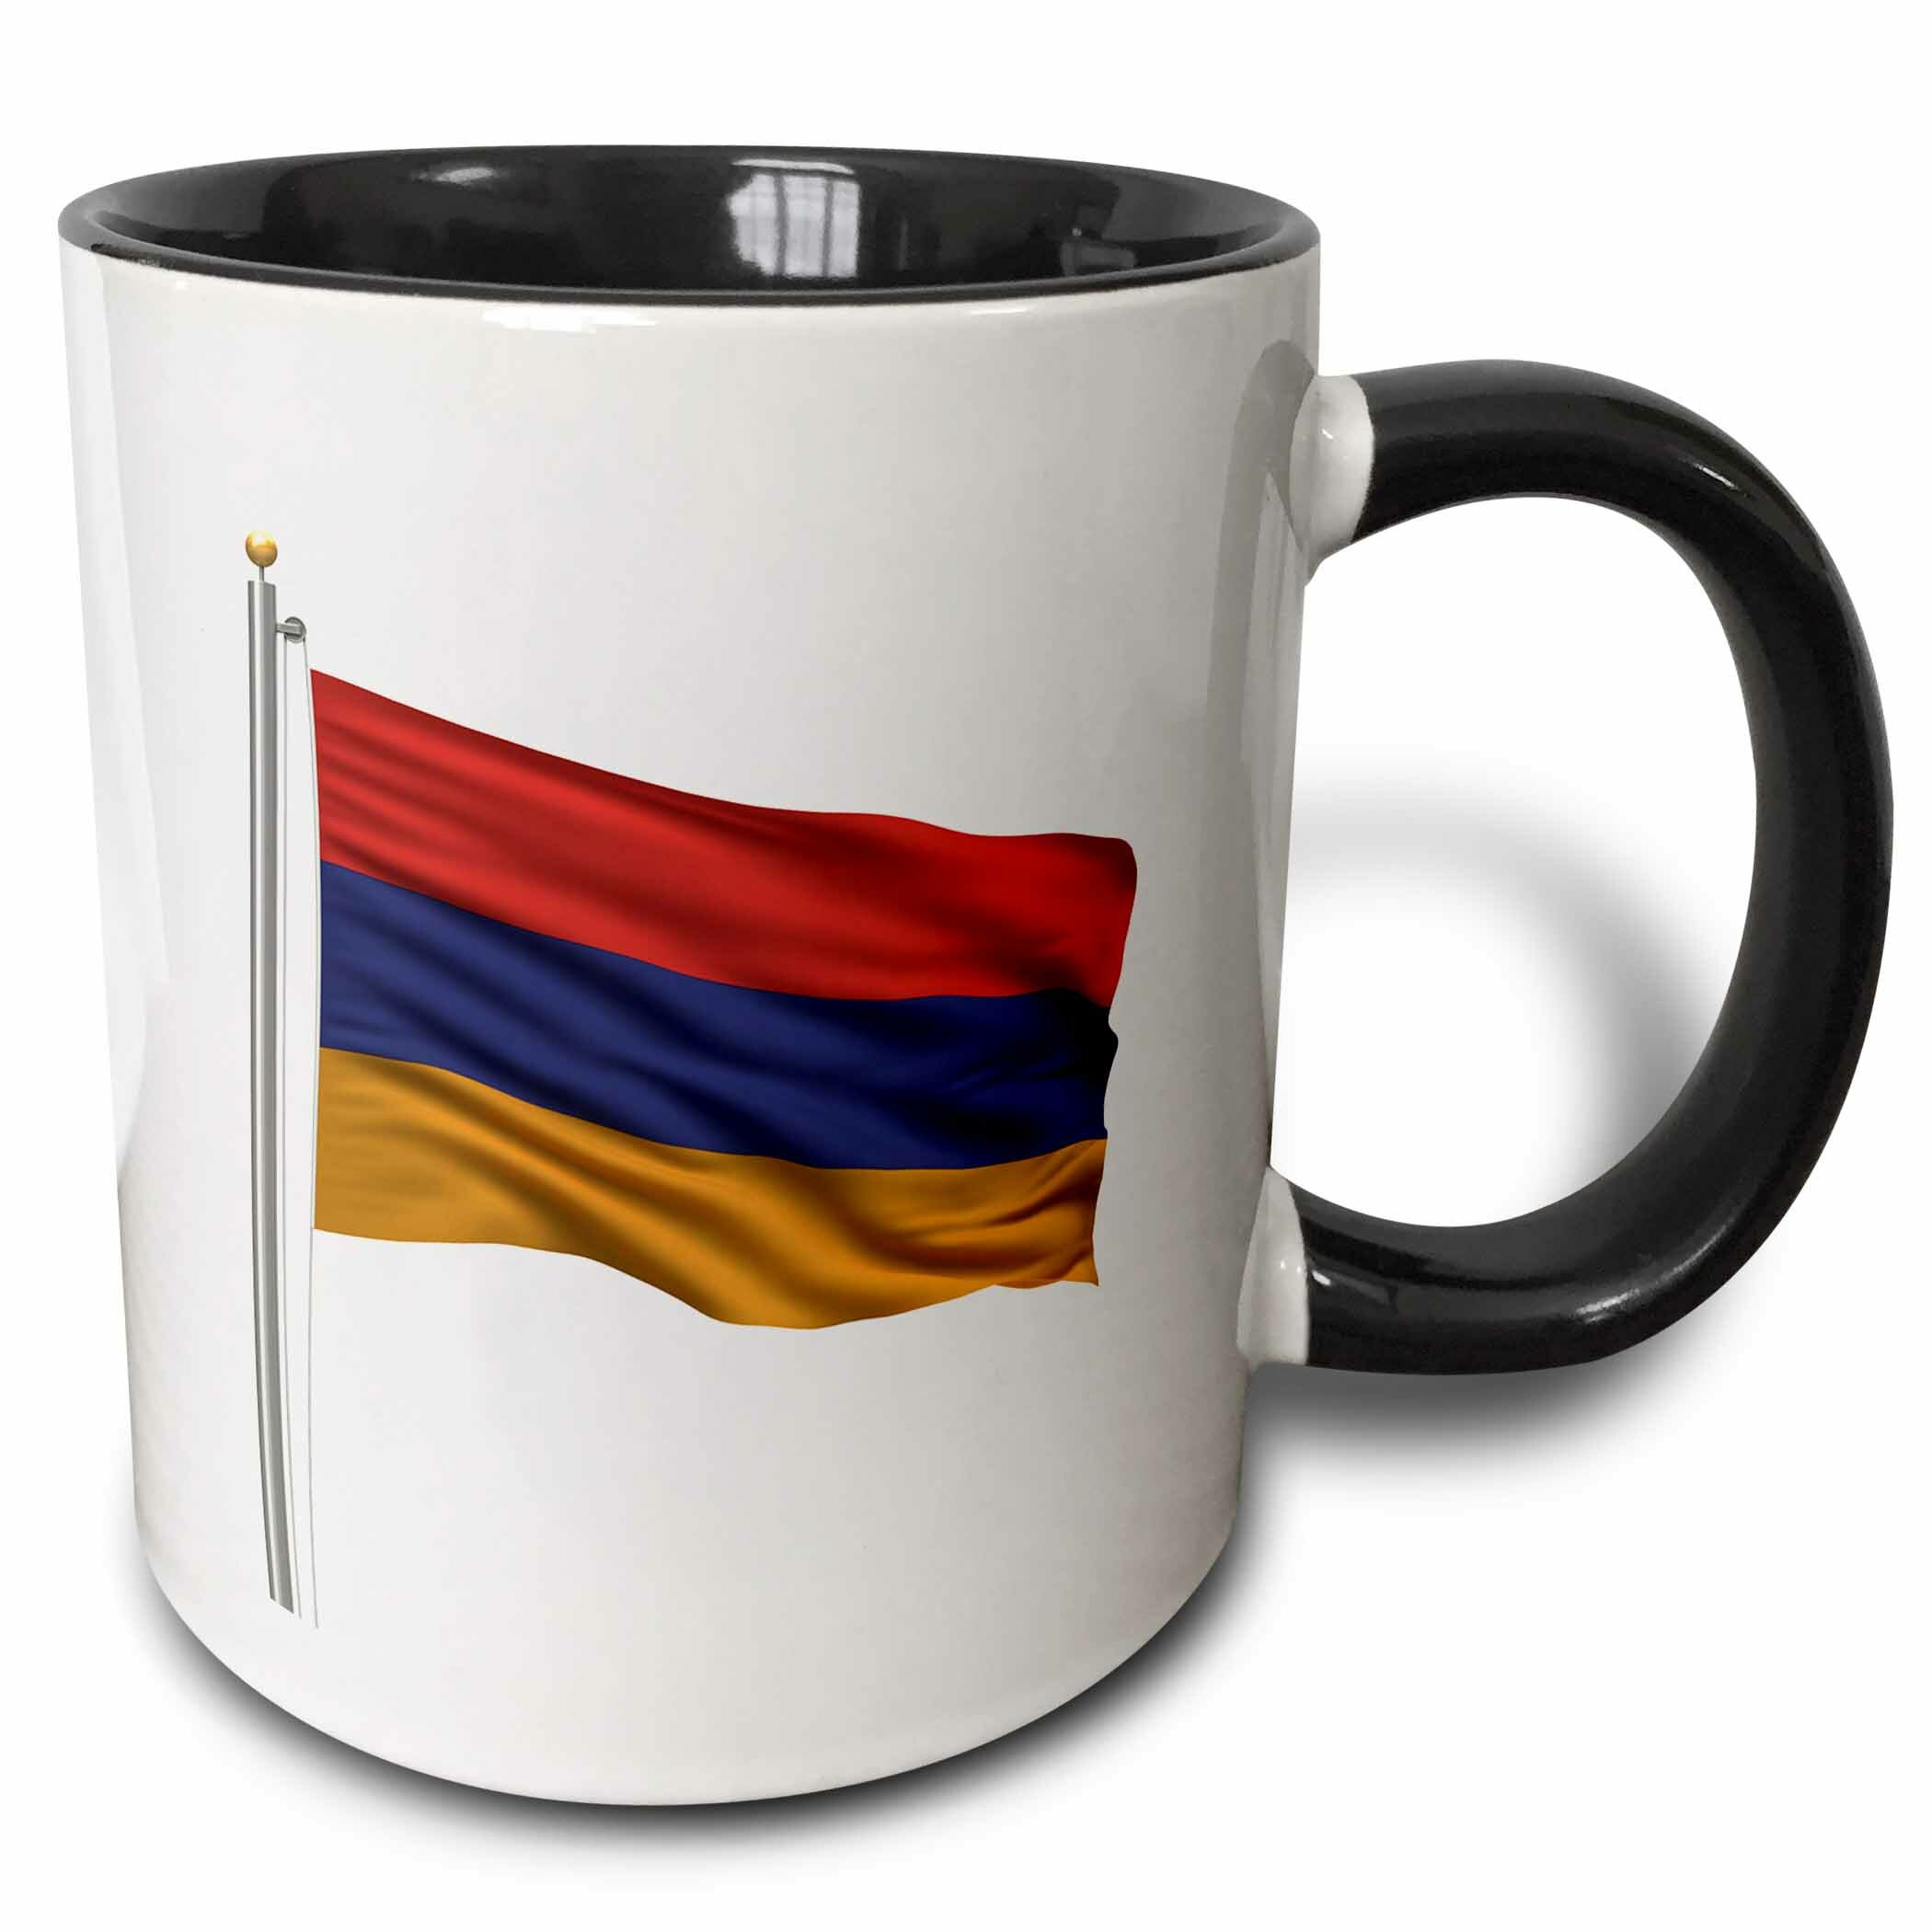 Kitchen Furniture Yerevan: East Urban Home Flag Of Armenia On A Flag Pole Over